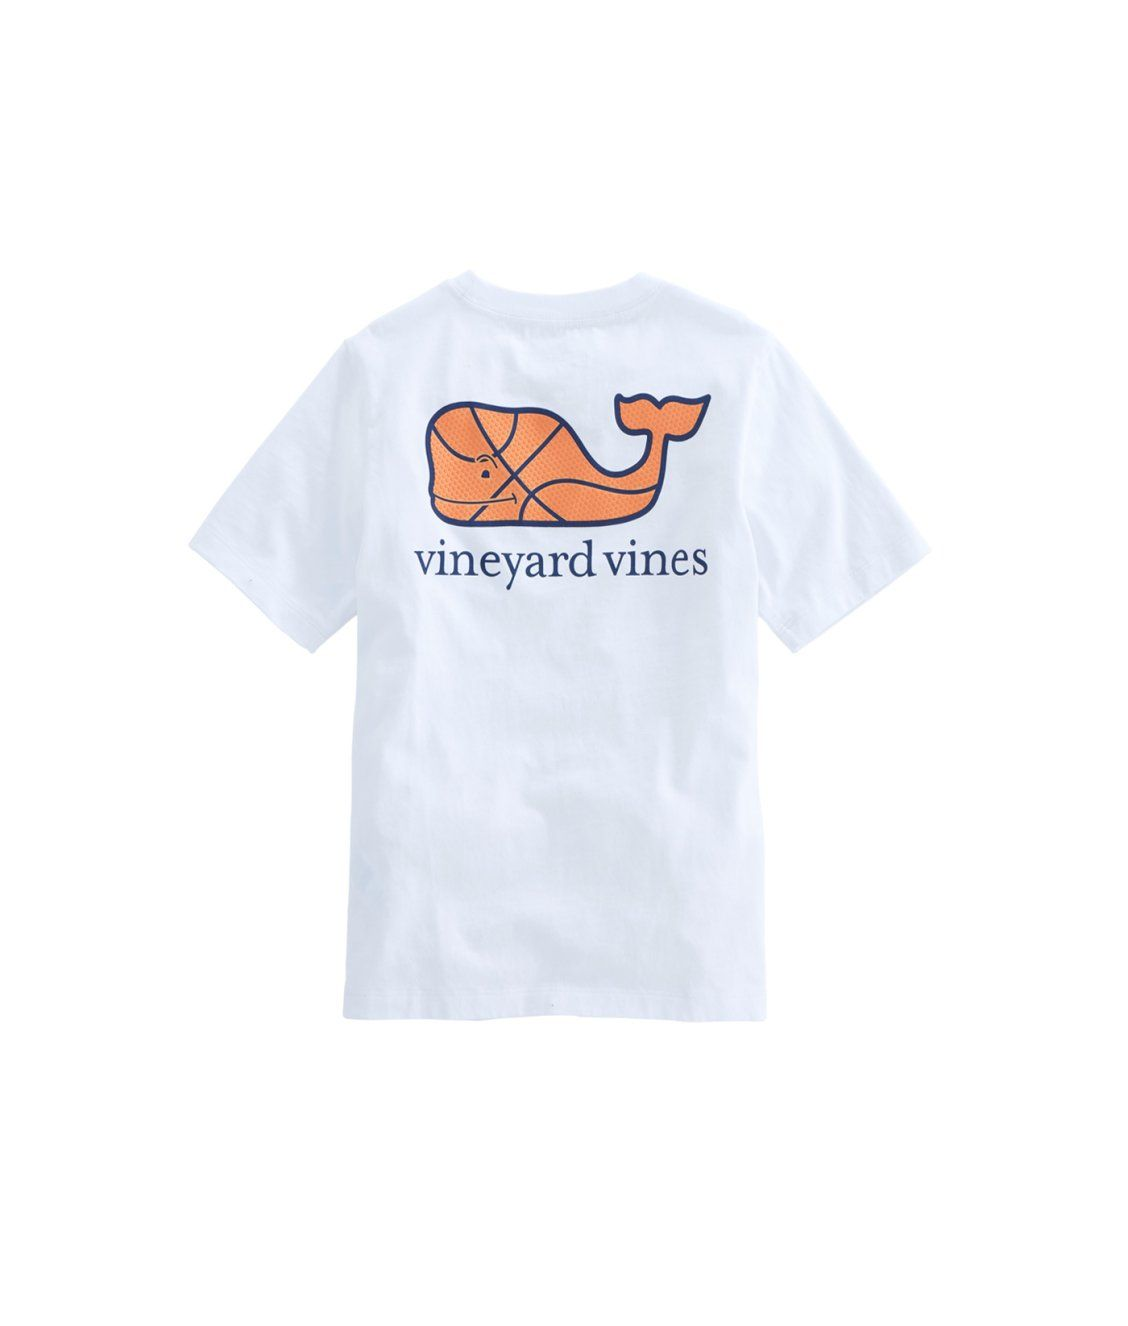 f42f1d24c Boys Basketball Character Whale Pocket T-Shirt | new arrivals in ...